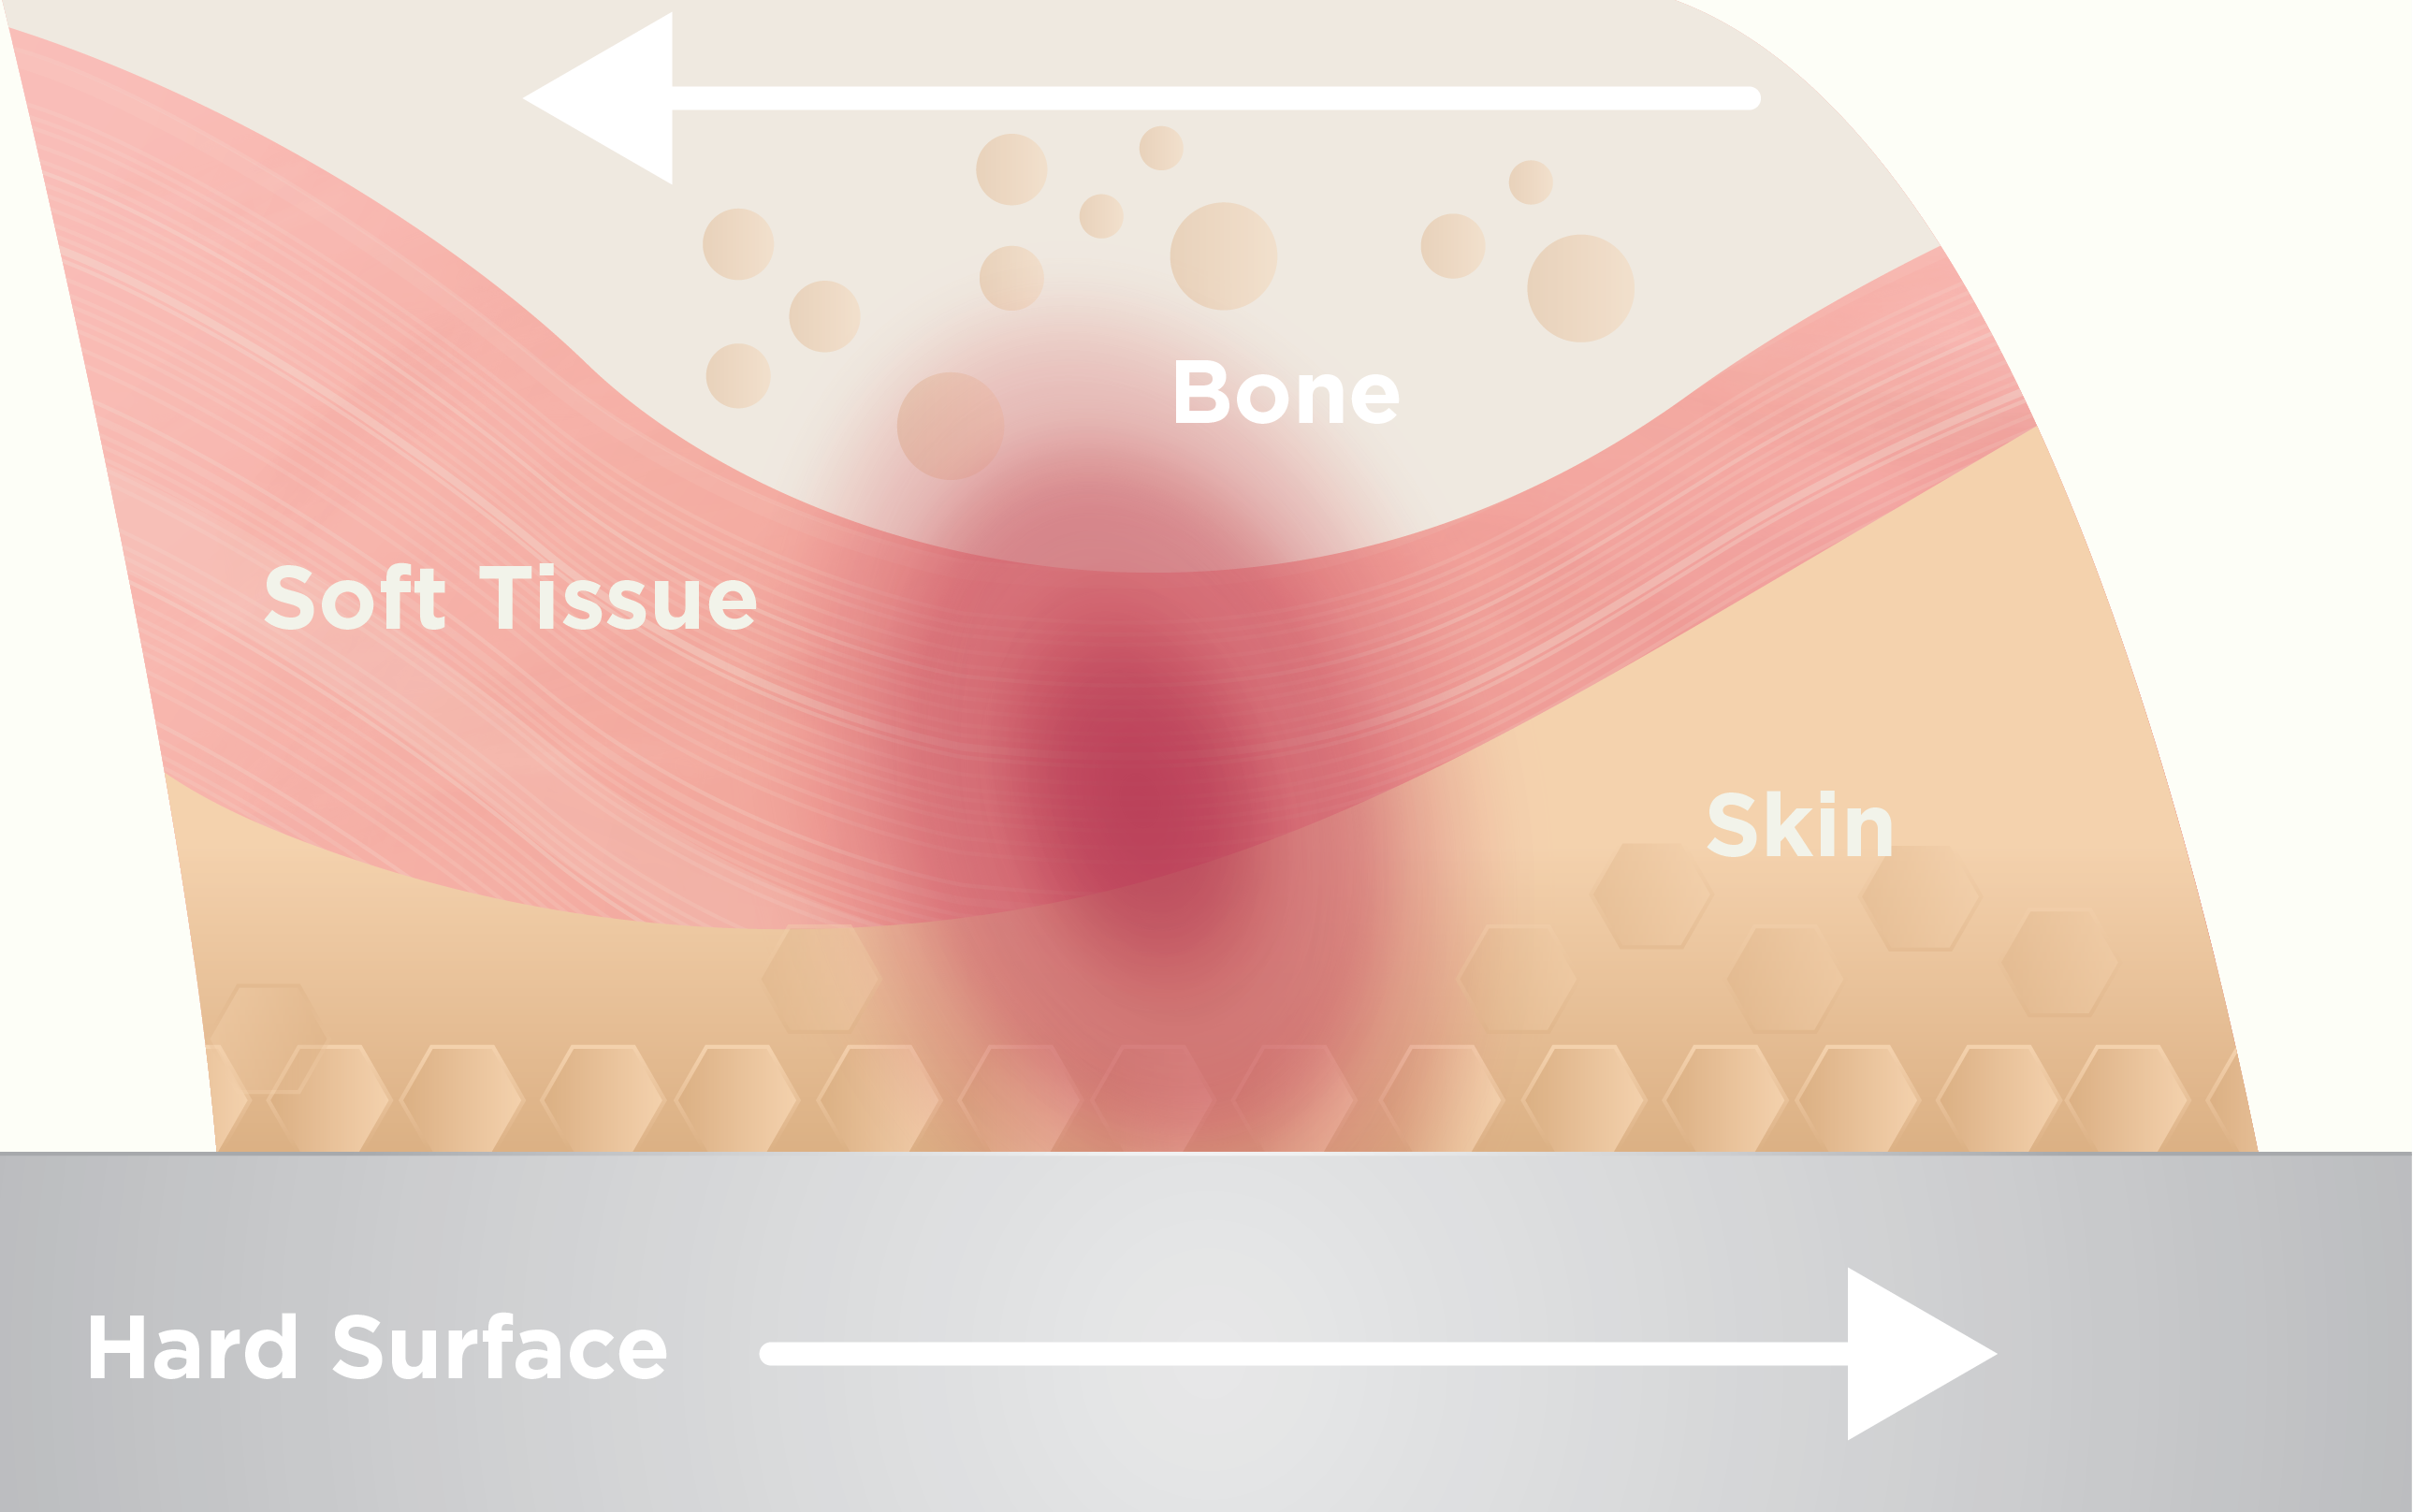 Friction can affect the formation of pressure ulcers